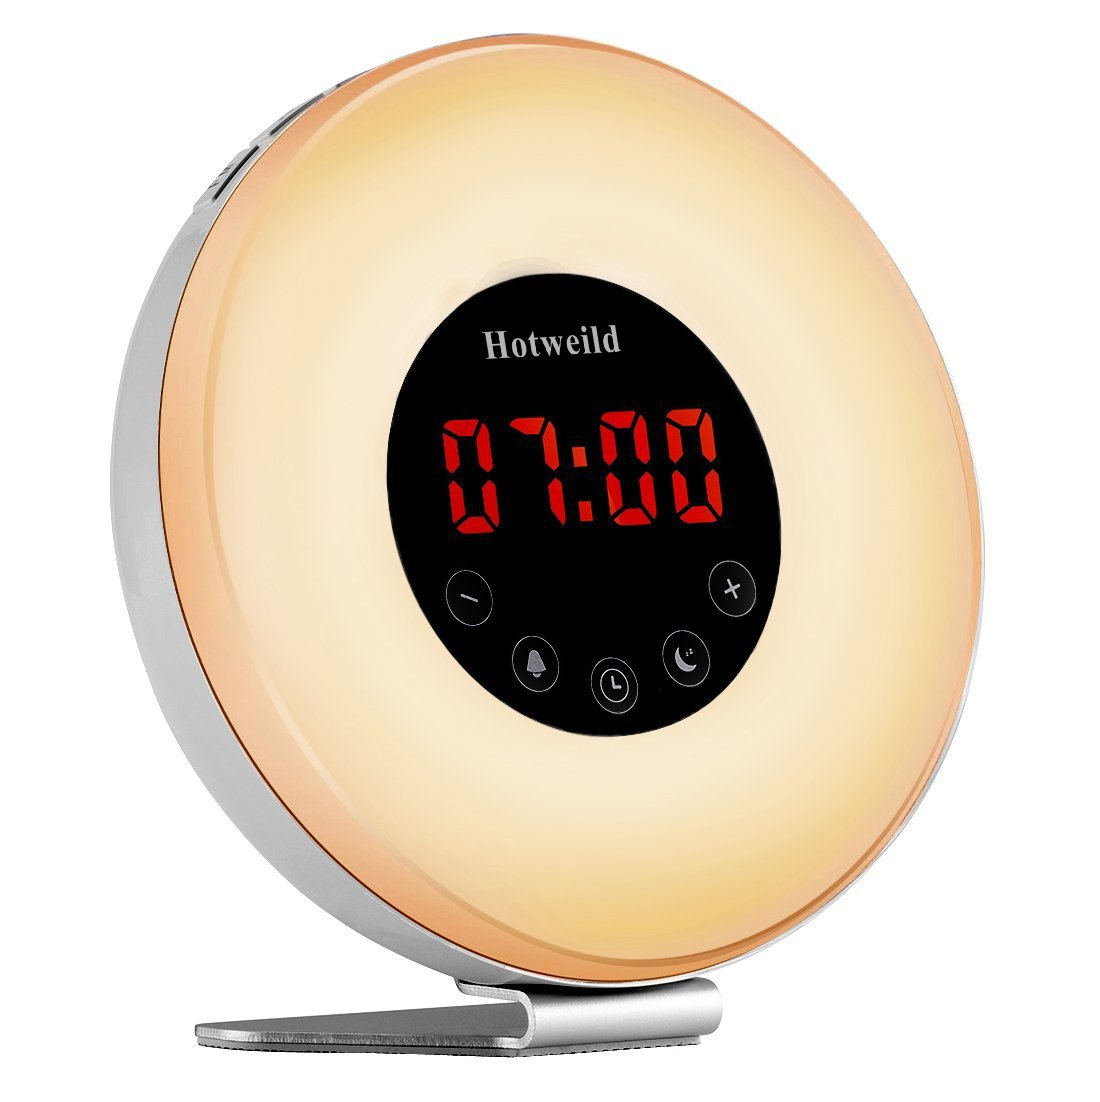 Alarm clock, Hotweild Sunrise & Sunset Simulator USB LED Digital Clock Wake up Light [Luxury Edition] with FM Radio Touch Control 7 Colors and 6 Nature Sounds Night Light Table Lamp, product image